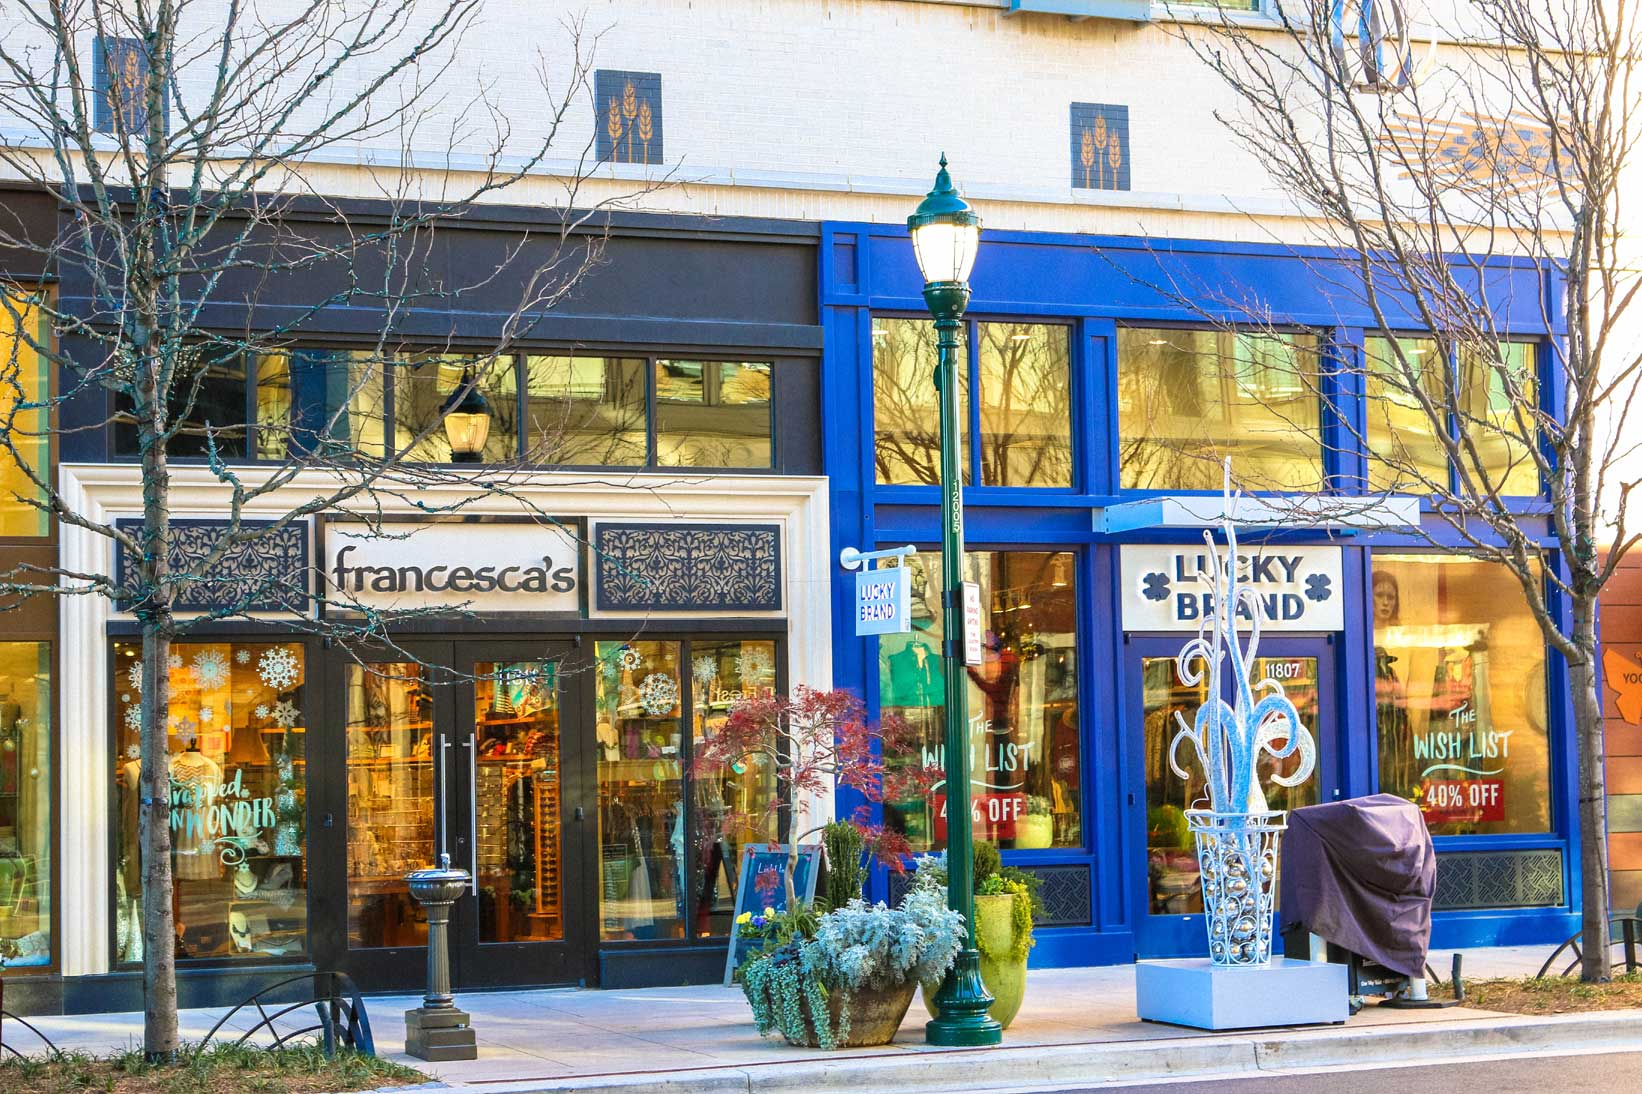 Francesca's and Lucky Brand in North Bethesda, MD